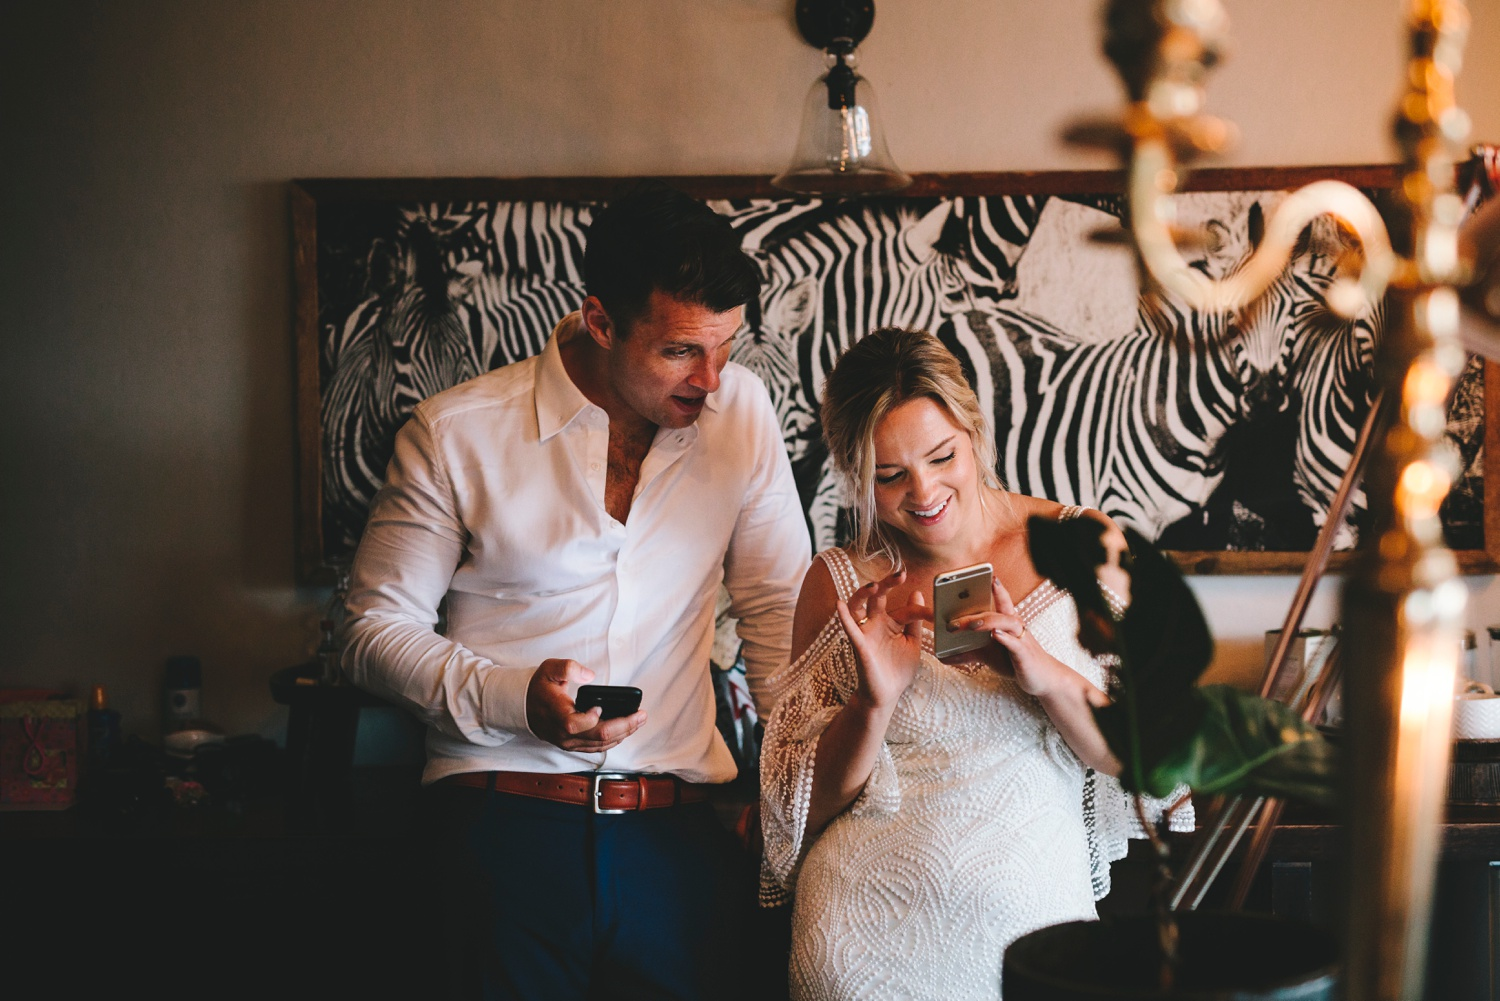 charlie_ray_photography_runaway_romance_elopement_emily_moon_plett_simple_boho_wedding_south_africa_bohemium_0122.jpg